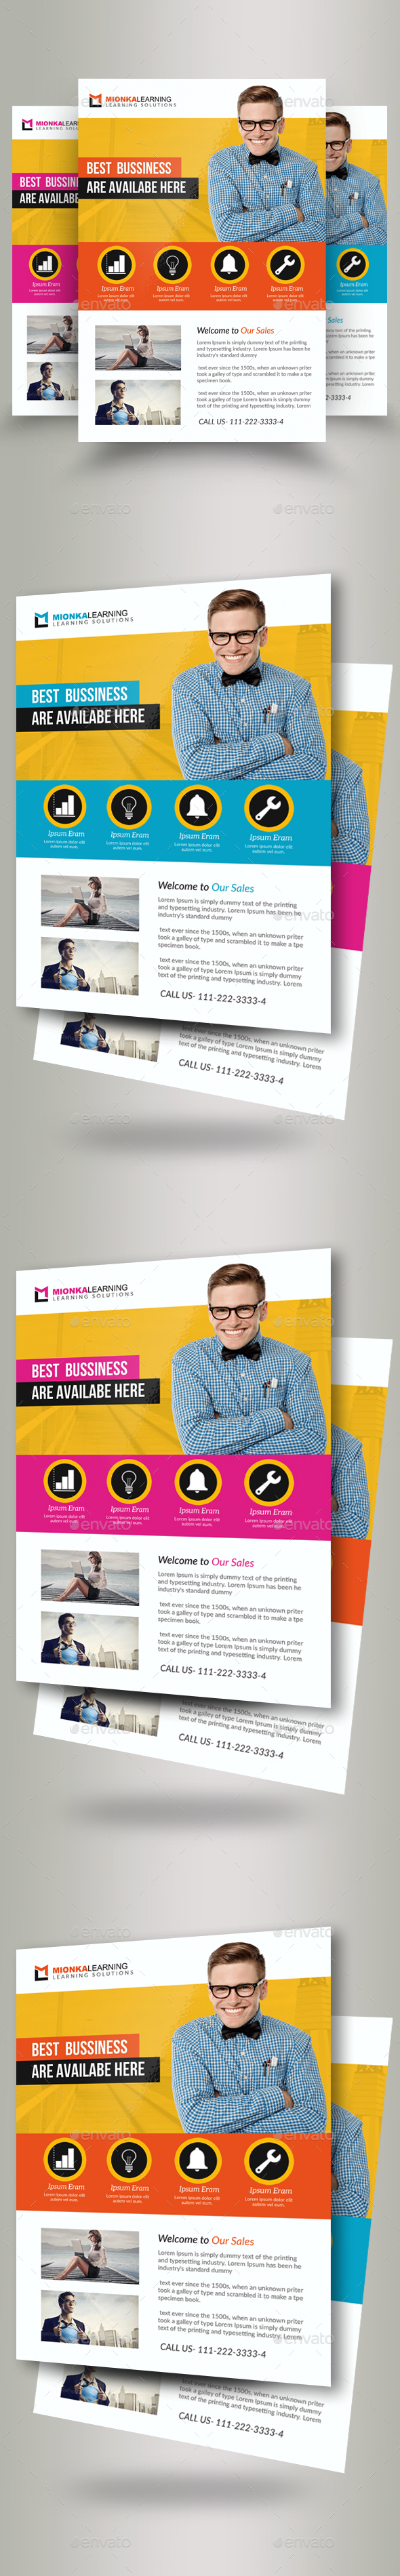 GraphicRiver Business Marketing Consultant Flyers 20843292